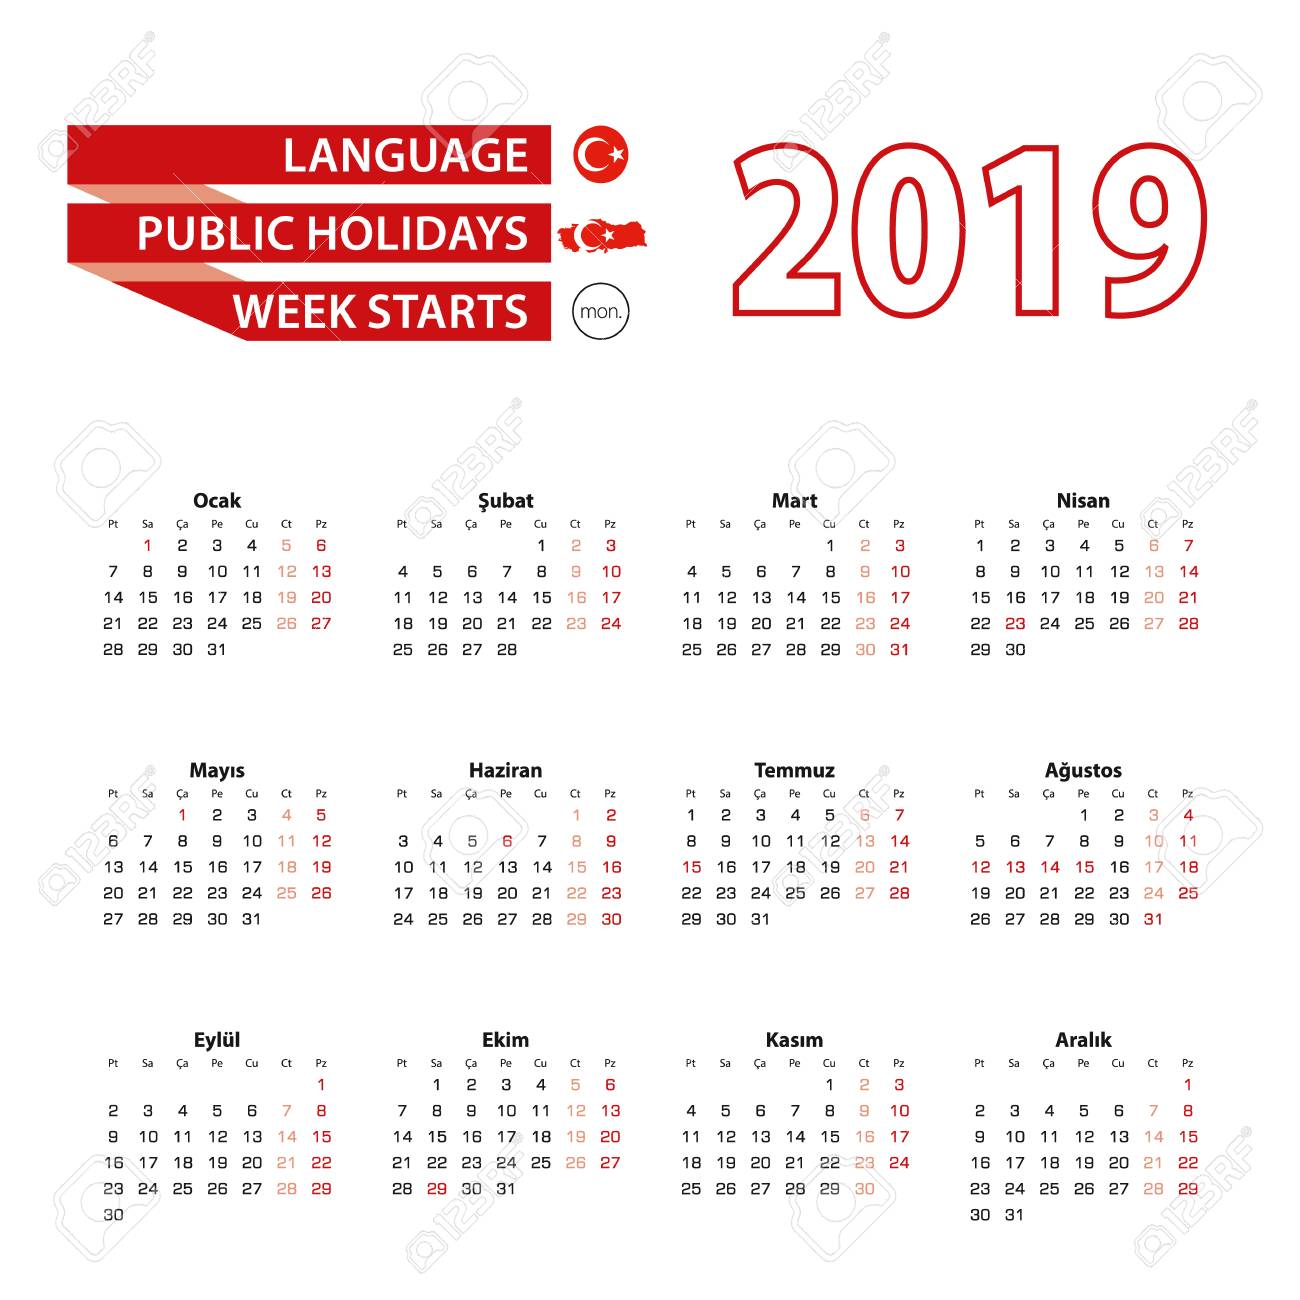 Cu Calendar 2019 Calendar 2019 In Turkish Language With Public Holidays The Country